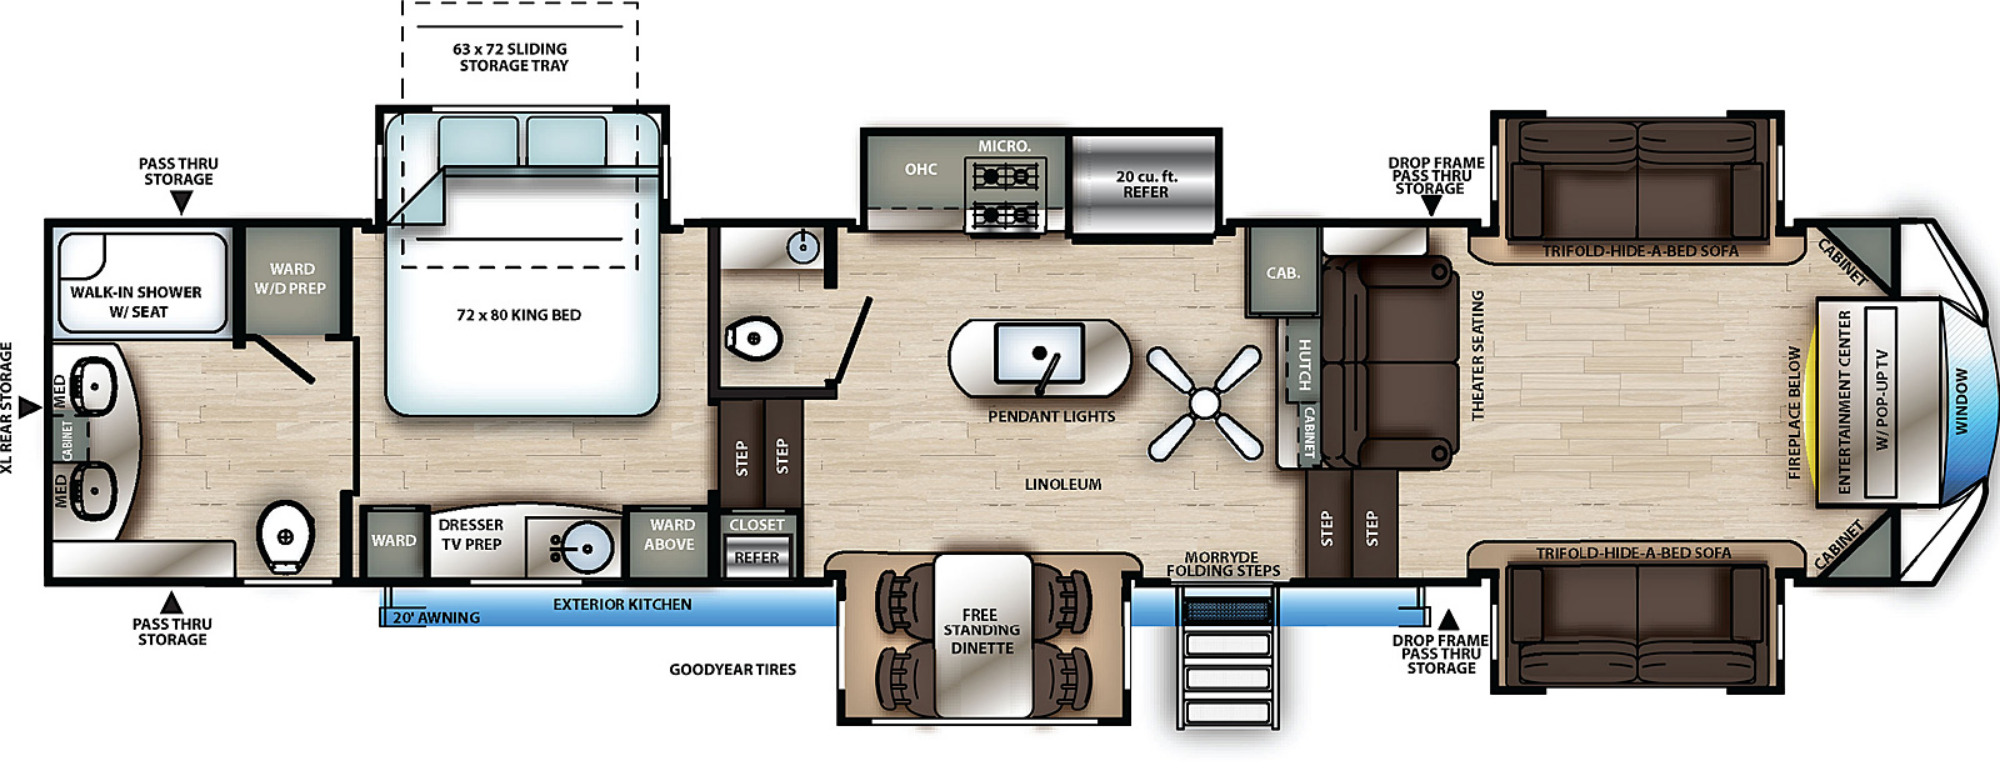 View Floor Plan for 2021 FOREST RIVER SIERRA 391FLRB